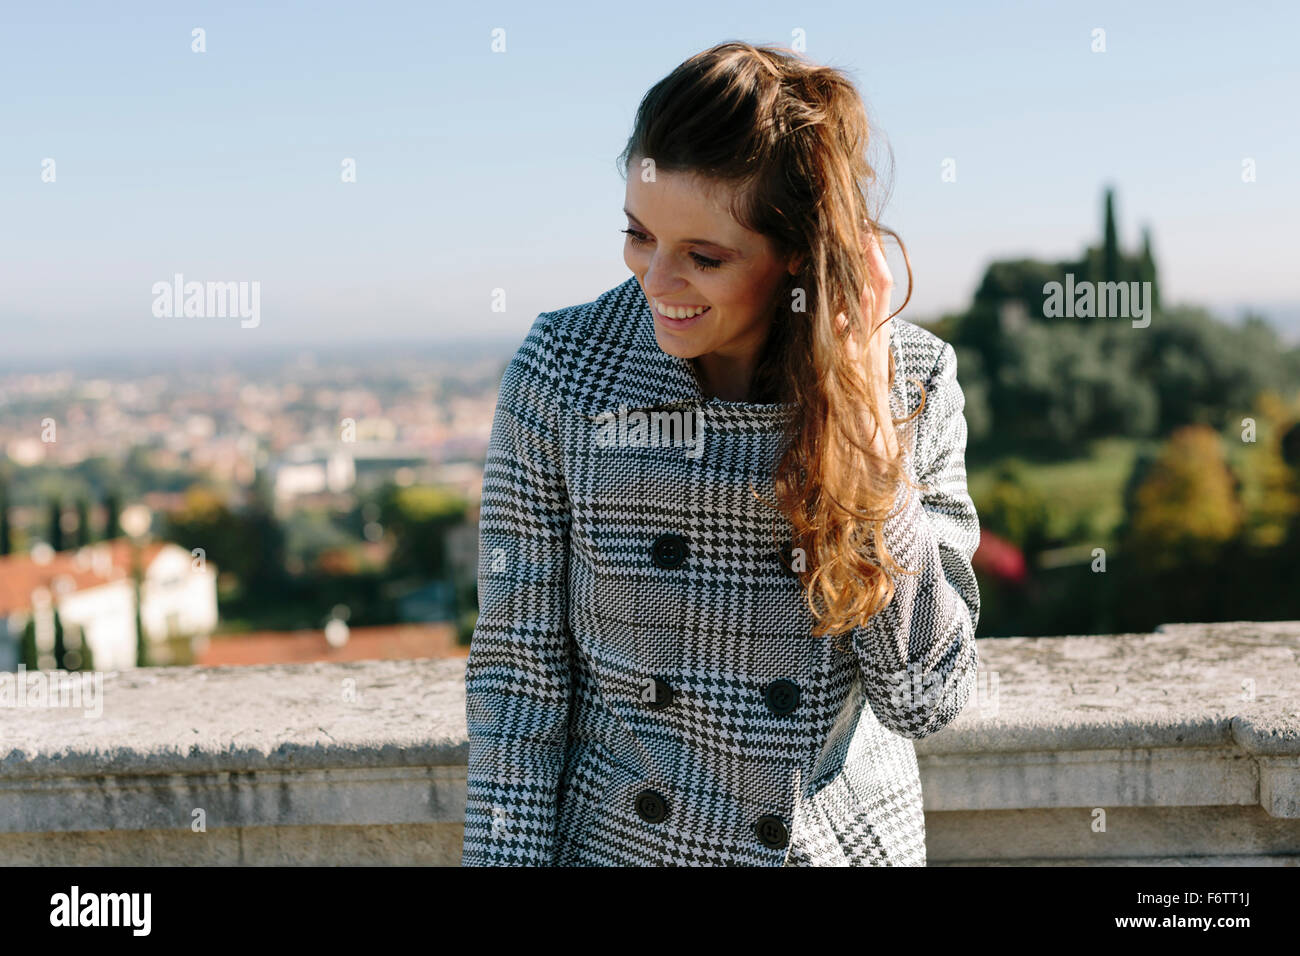 Italy, Vicenza, smiling brunette woman in checkered coat - Stock Image